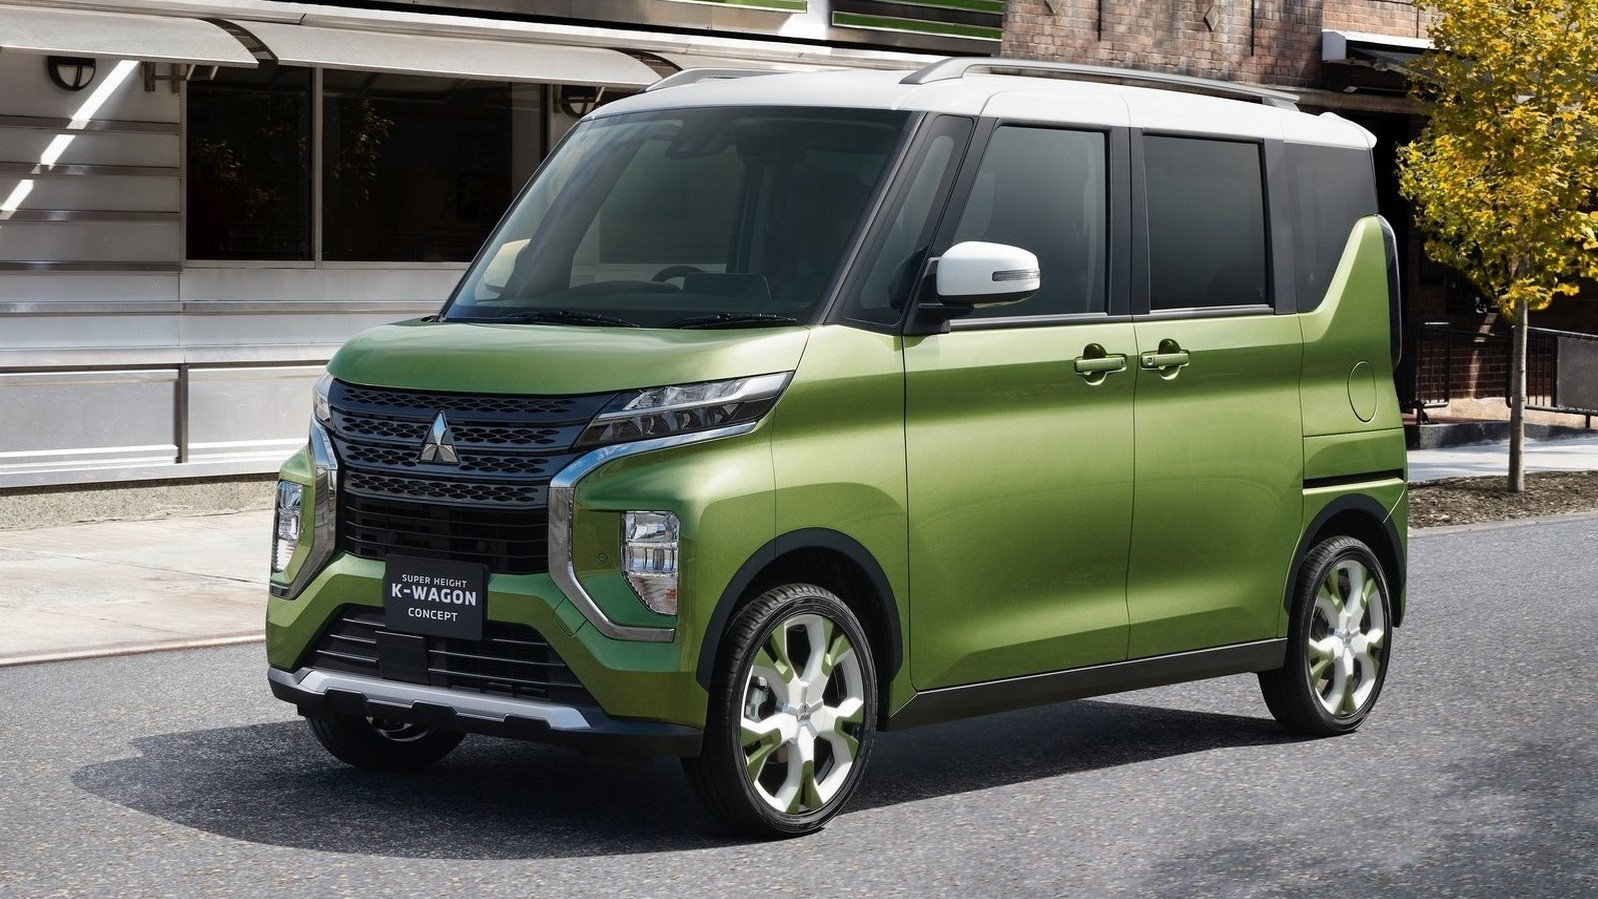 Mitsubishi Super Height K-Wagon Concept 2019